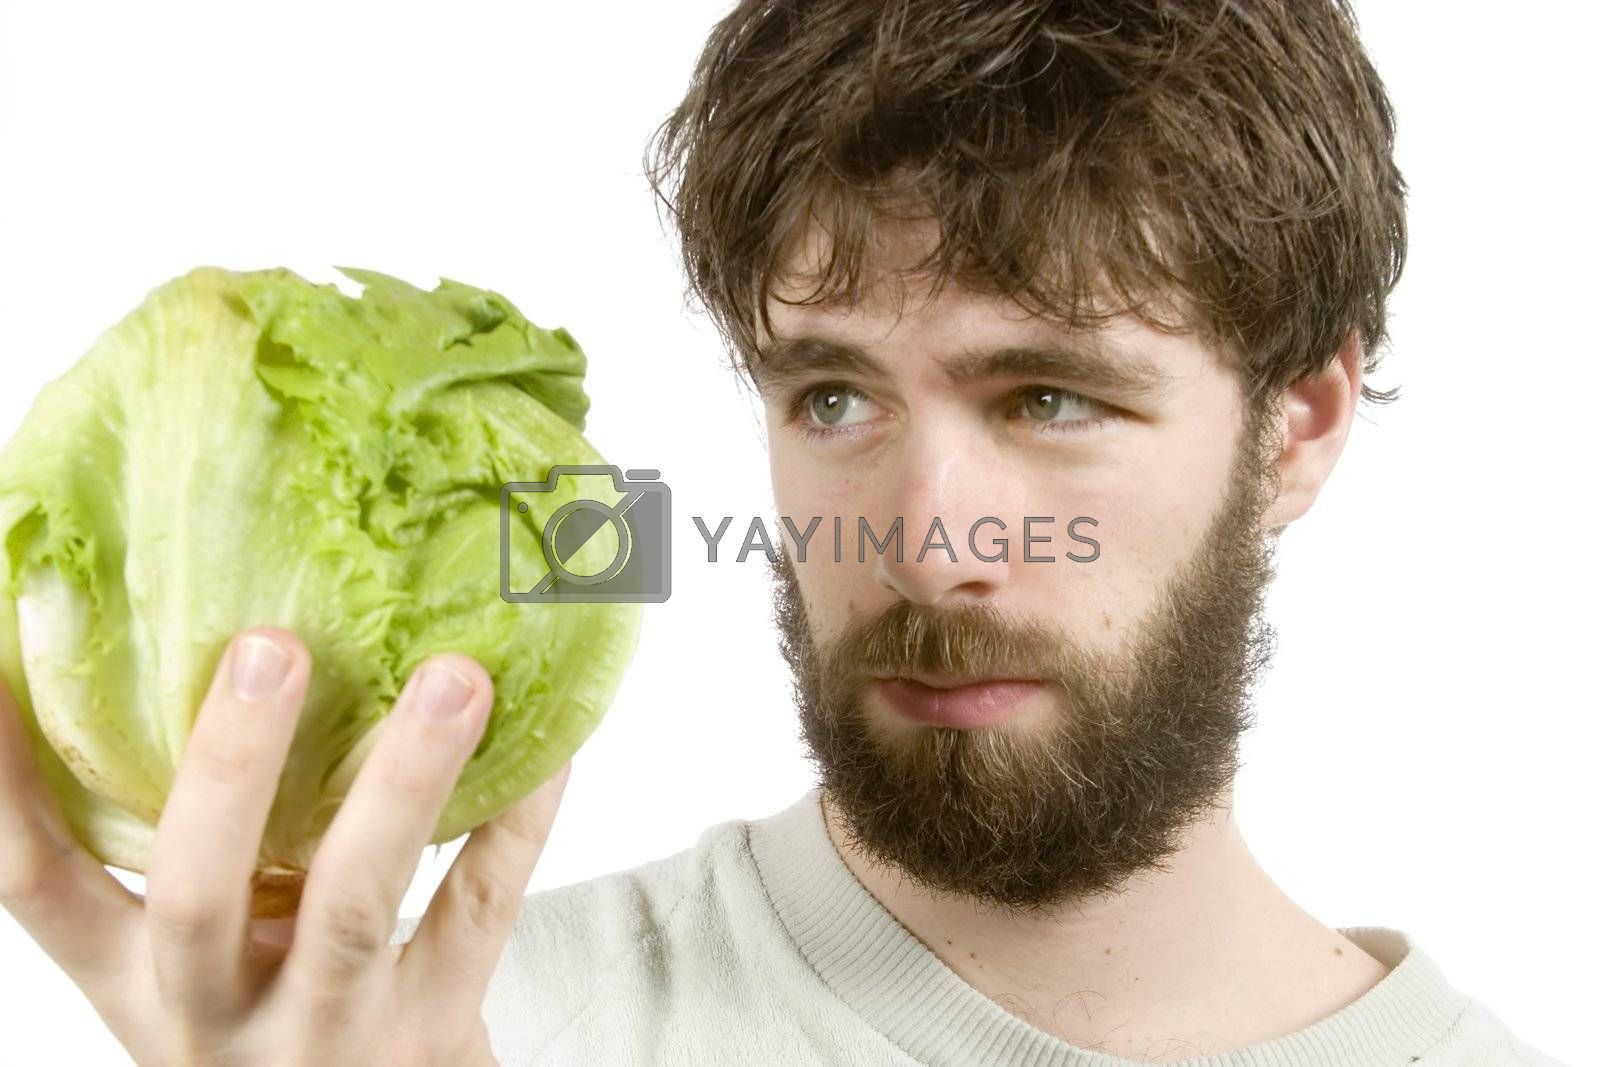 A young male with a beard looking at salad with scepticism.  The salad is out of focus.